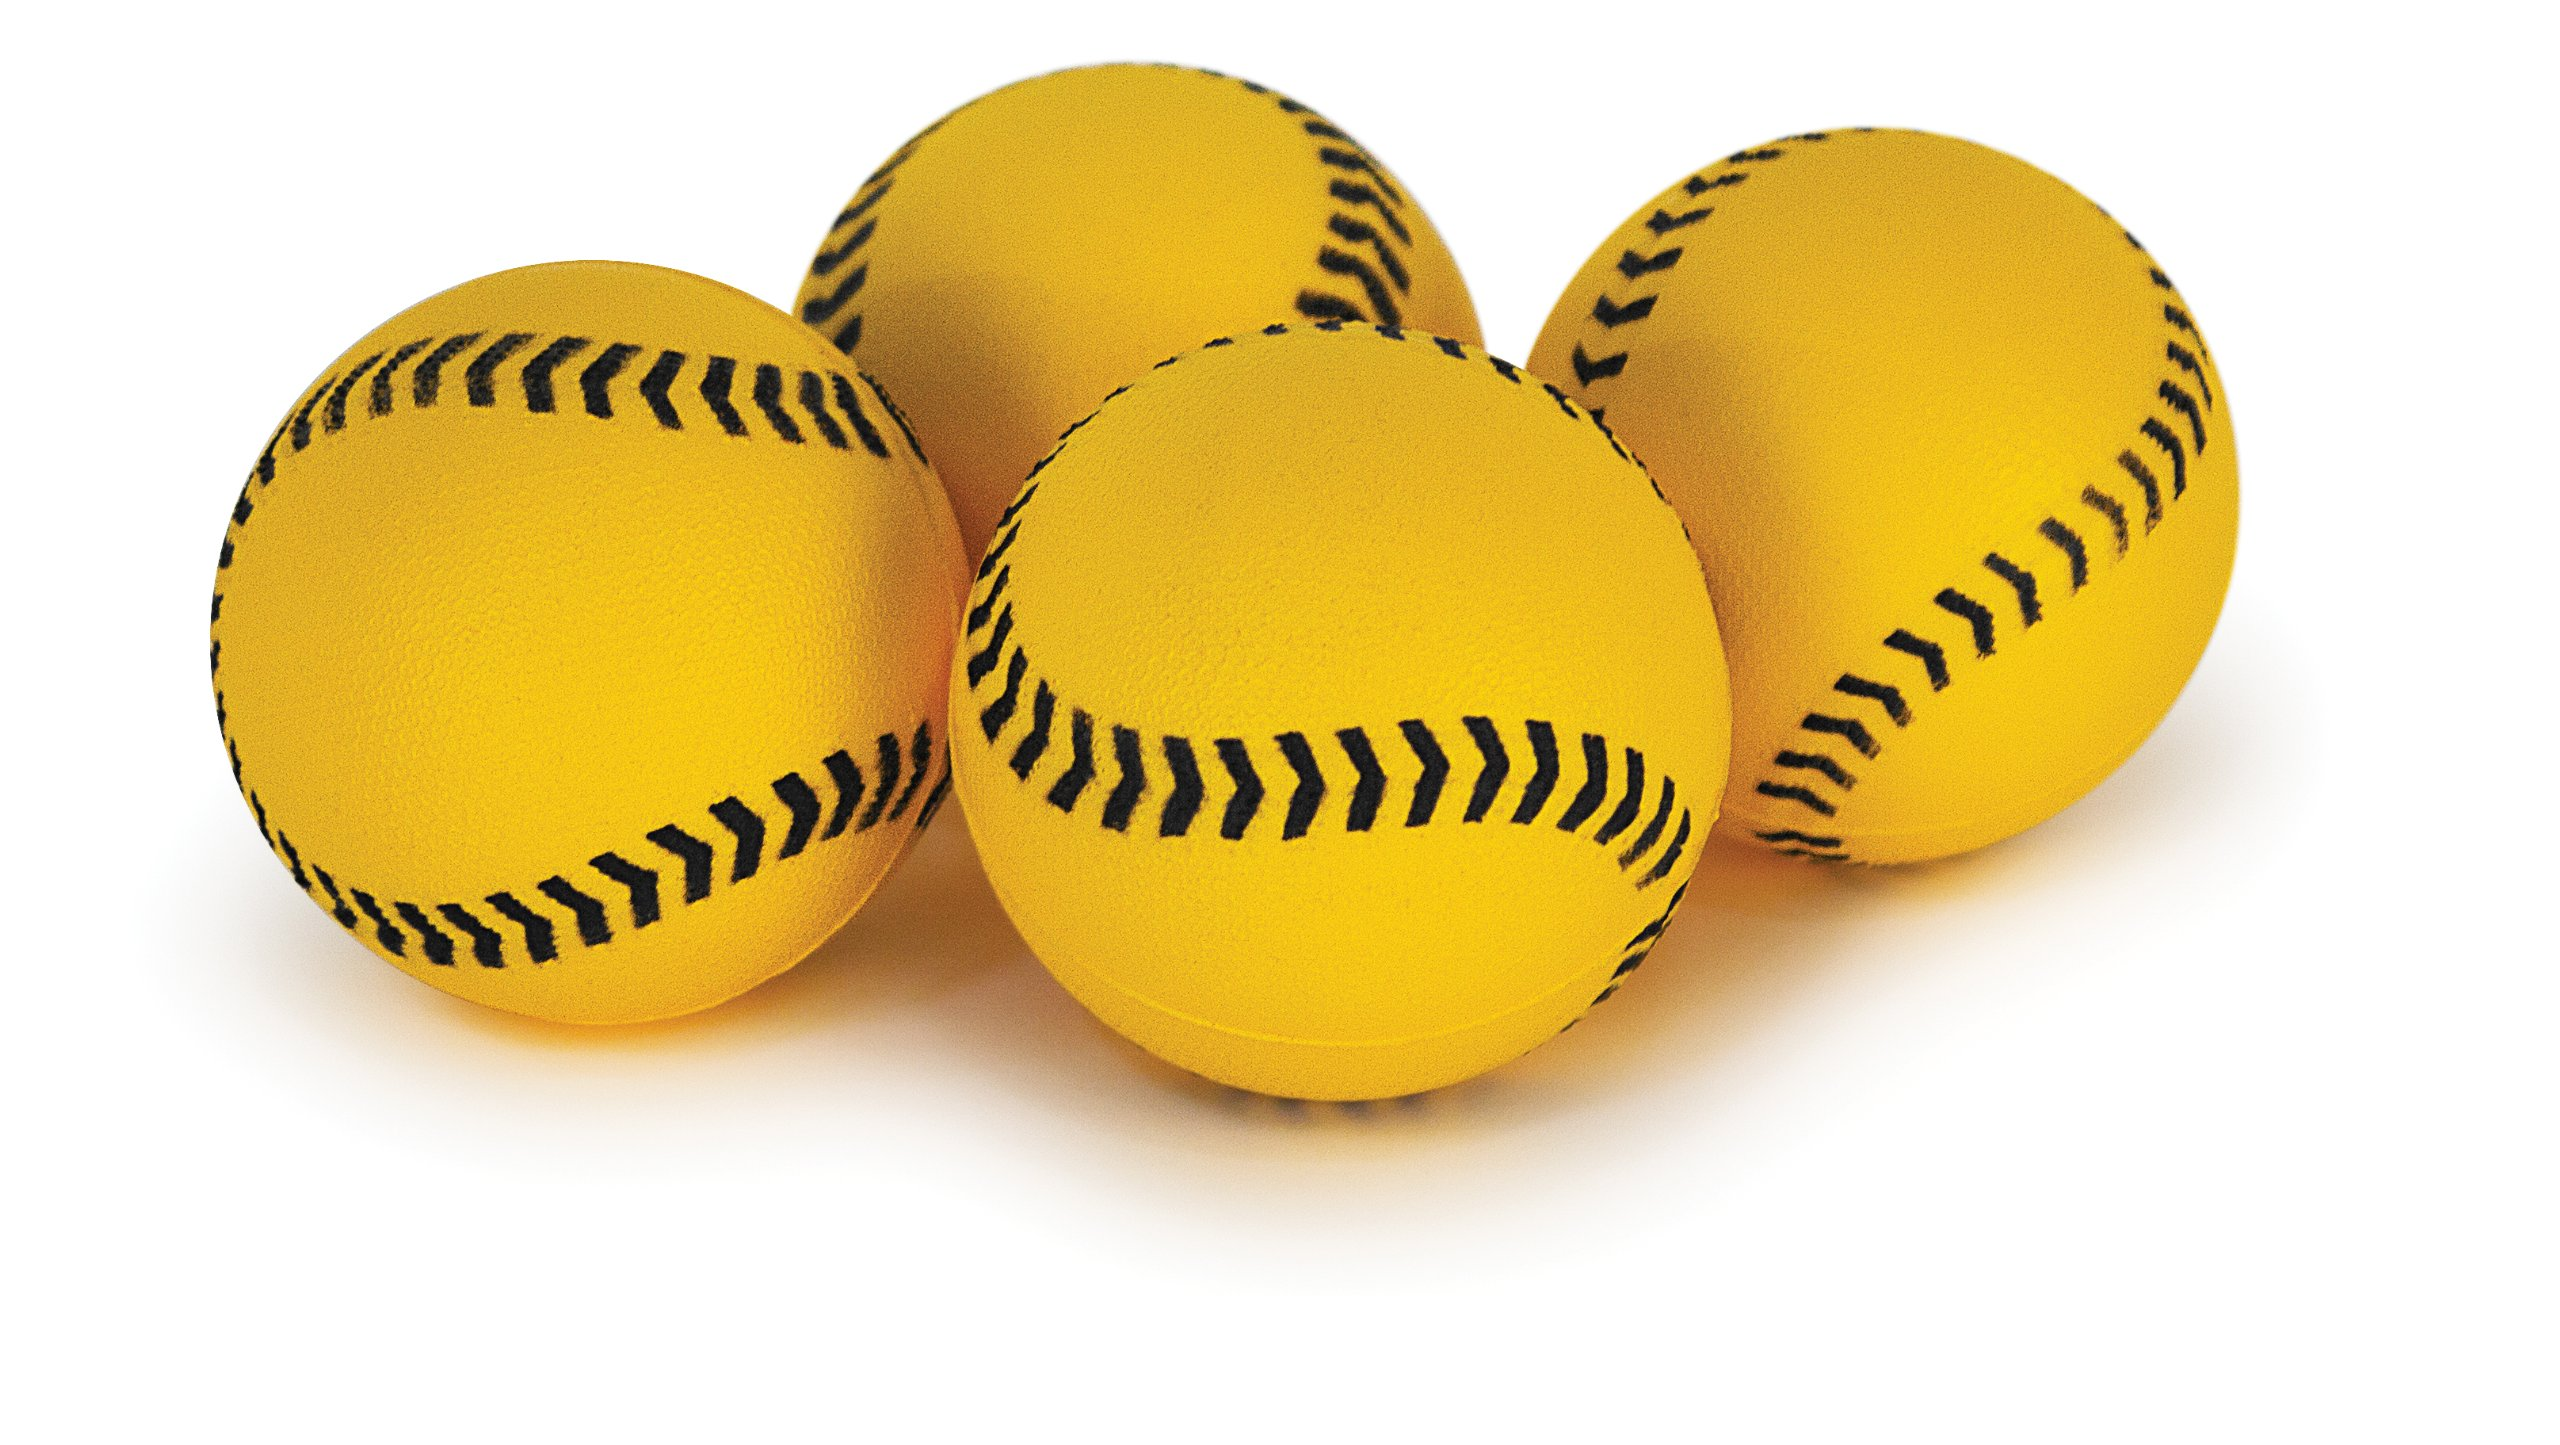 SKLZ Bolt Balls for Lightning Bolt Pitching Machine